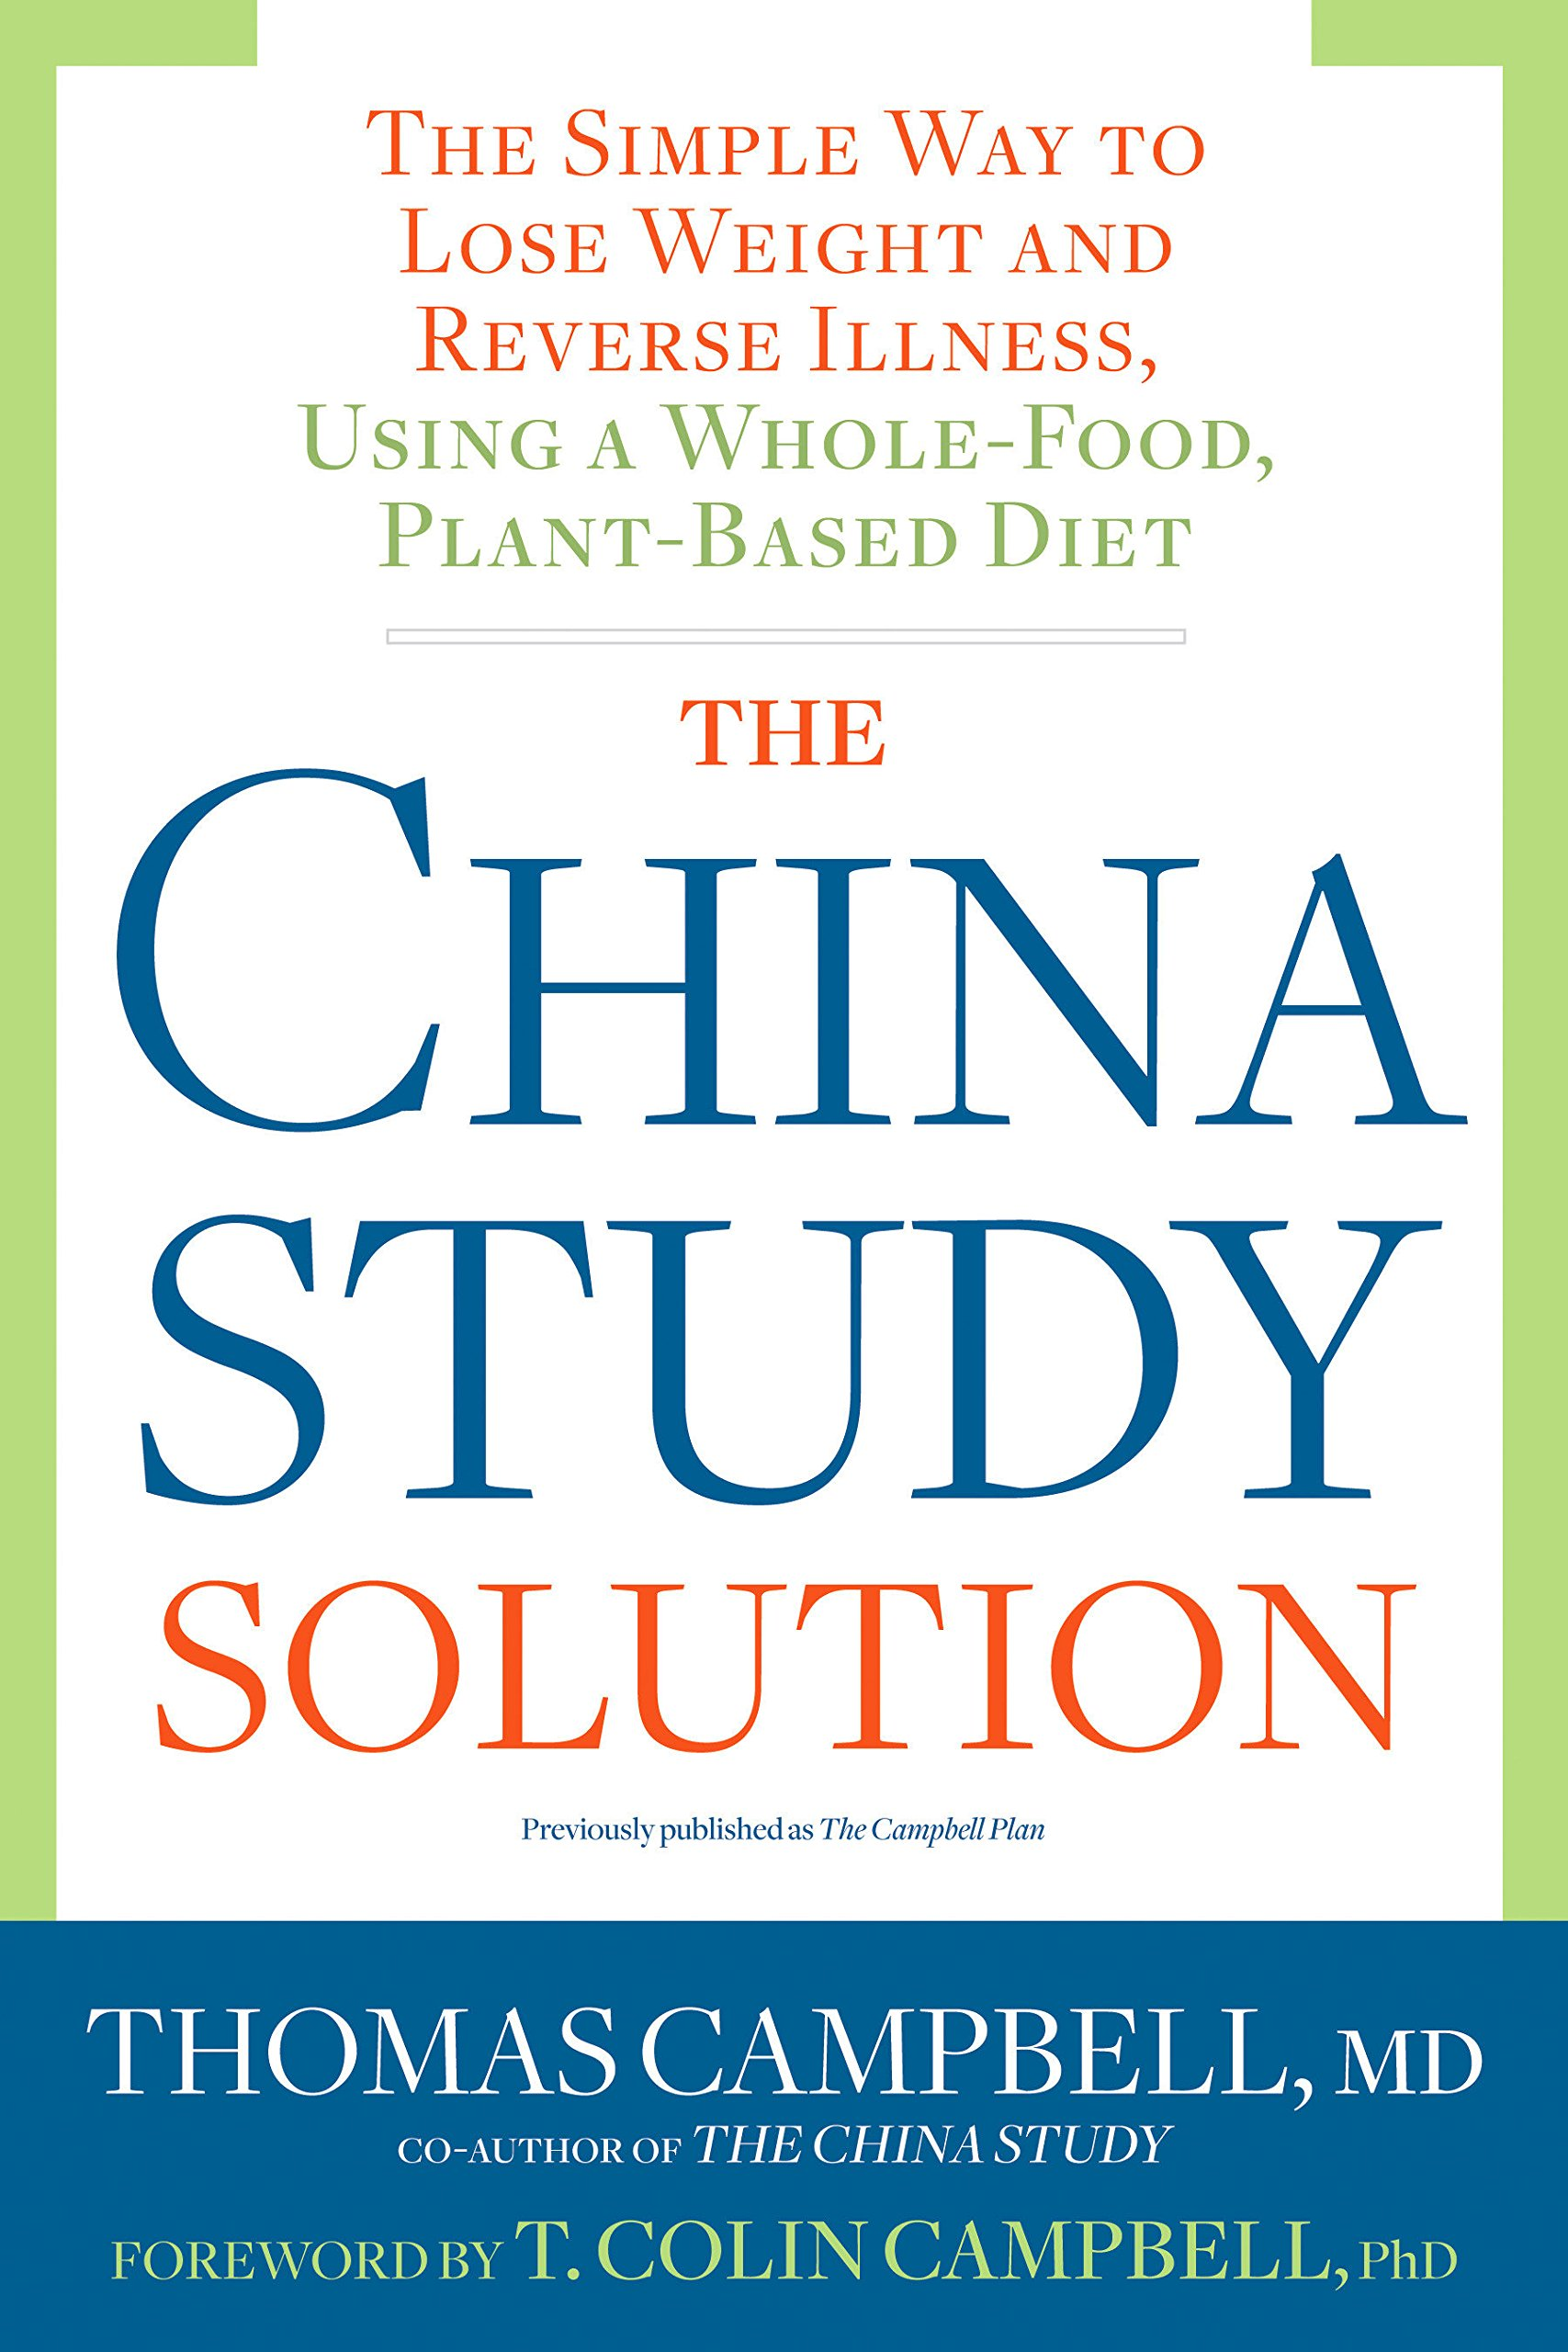 The China Study Solution The Simple Way To Lose Weight And Reverse